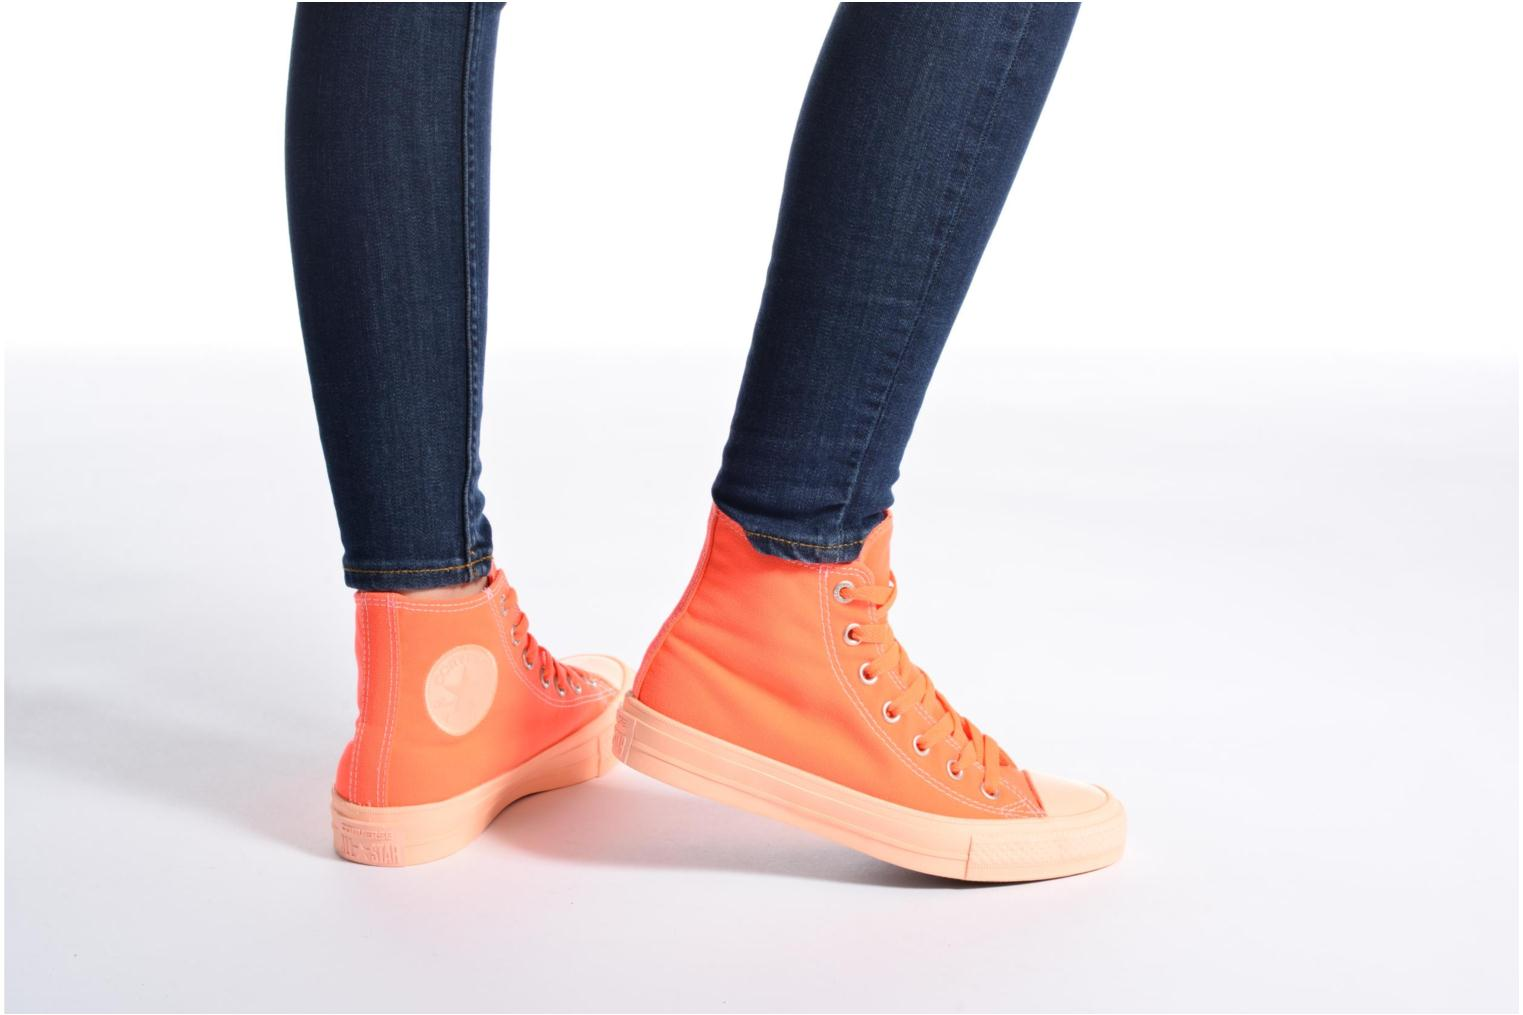 Hyper Orange/Sunset Glow/Sunset Glow Converse Chuck Taylor All Star II Hi Pastel Midsoles W (Orange)